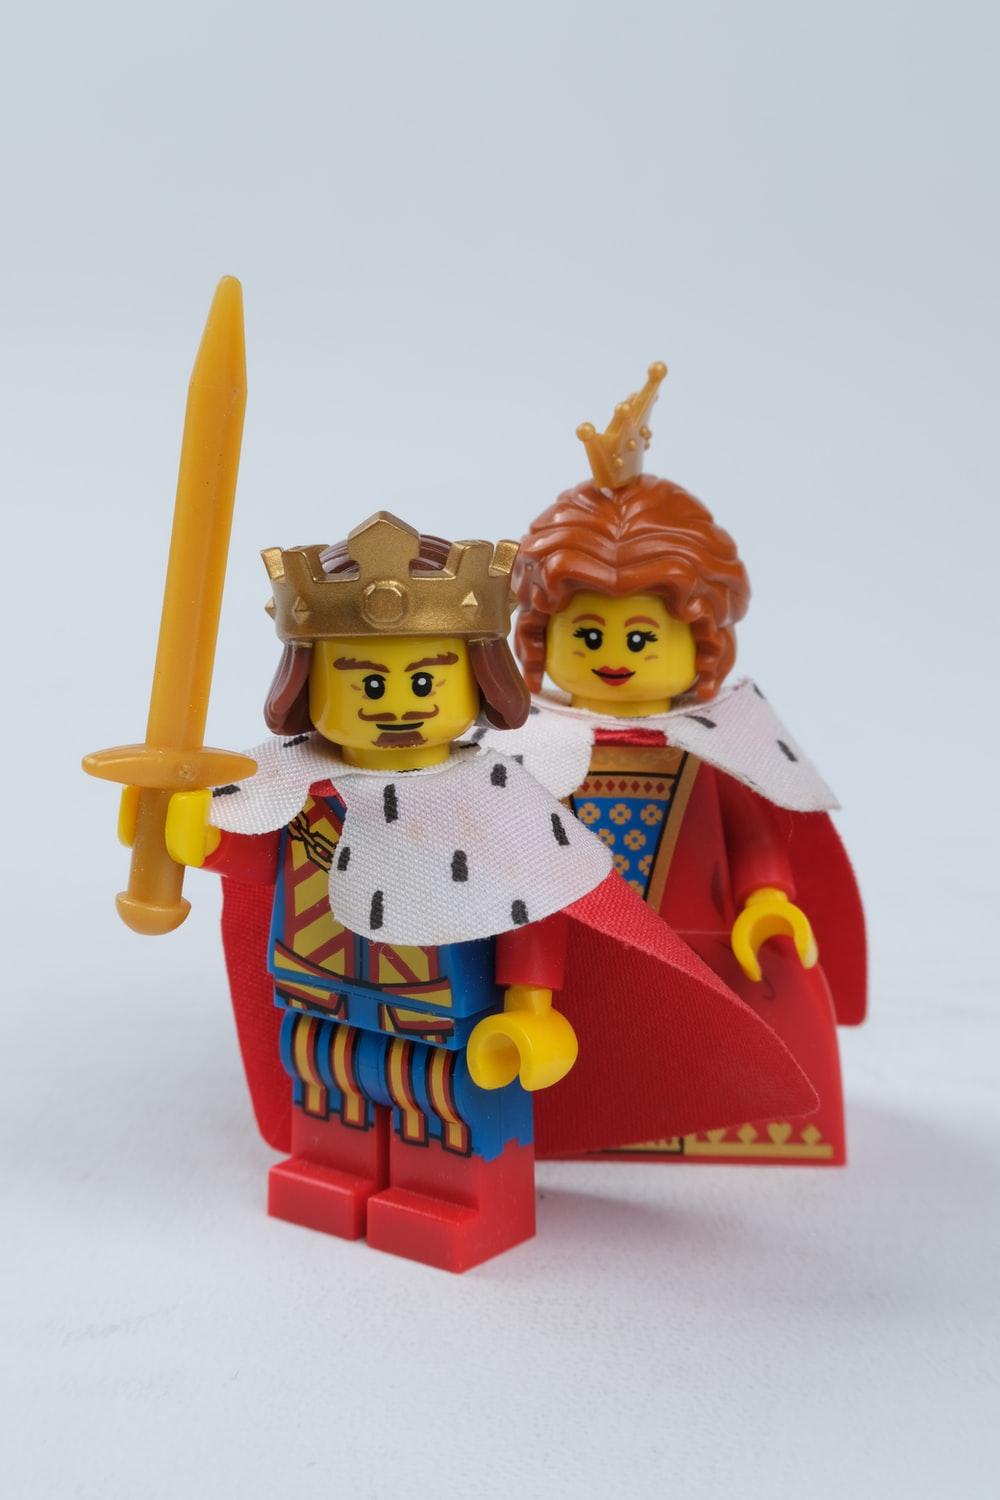 red and blue lego minifig